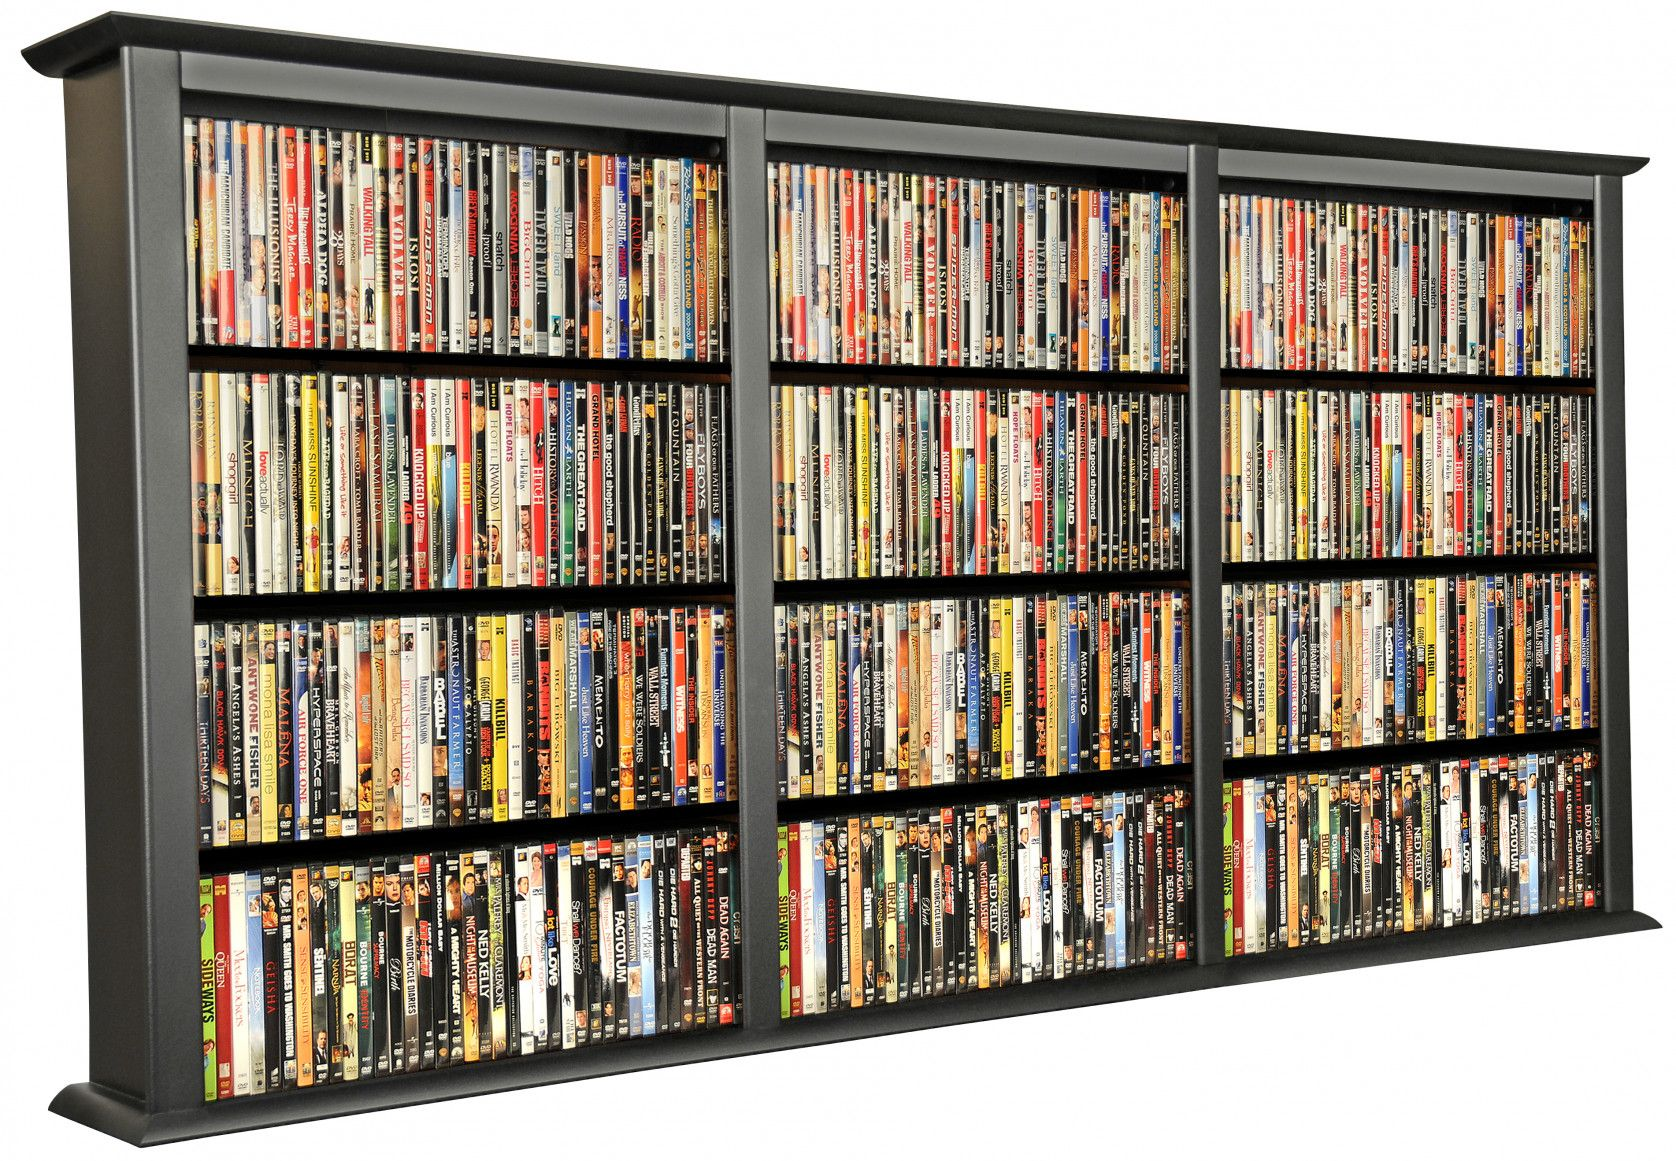 2018 Dvd and Cd Storage Cabinets Kitchen Decorating Ideas themes